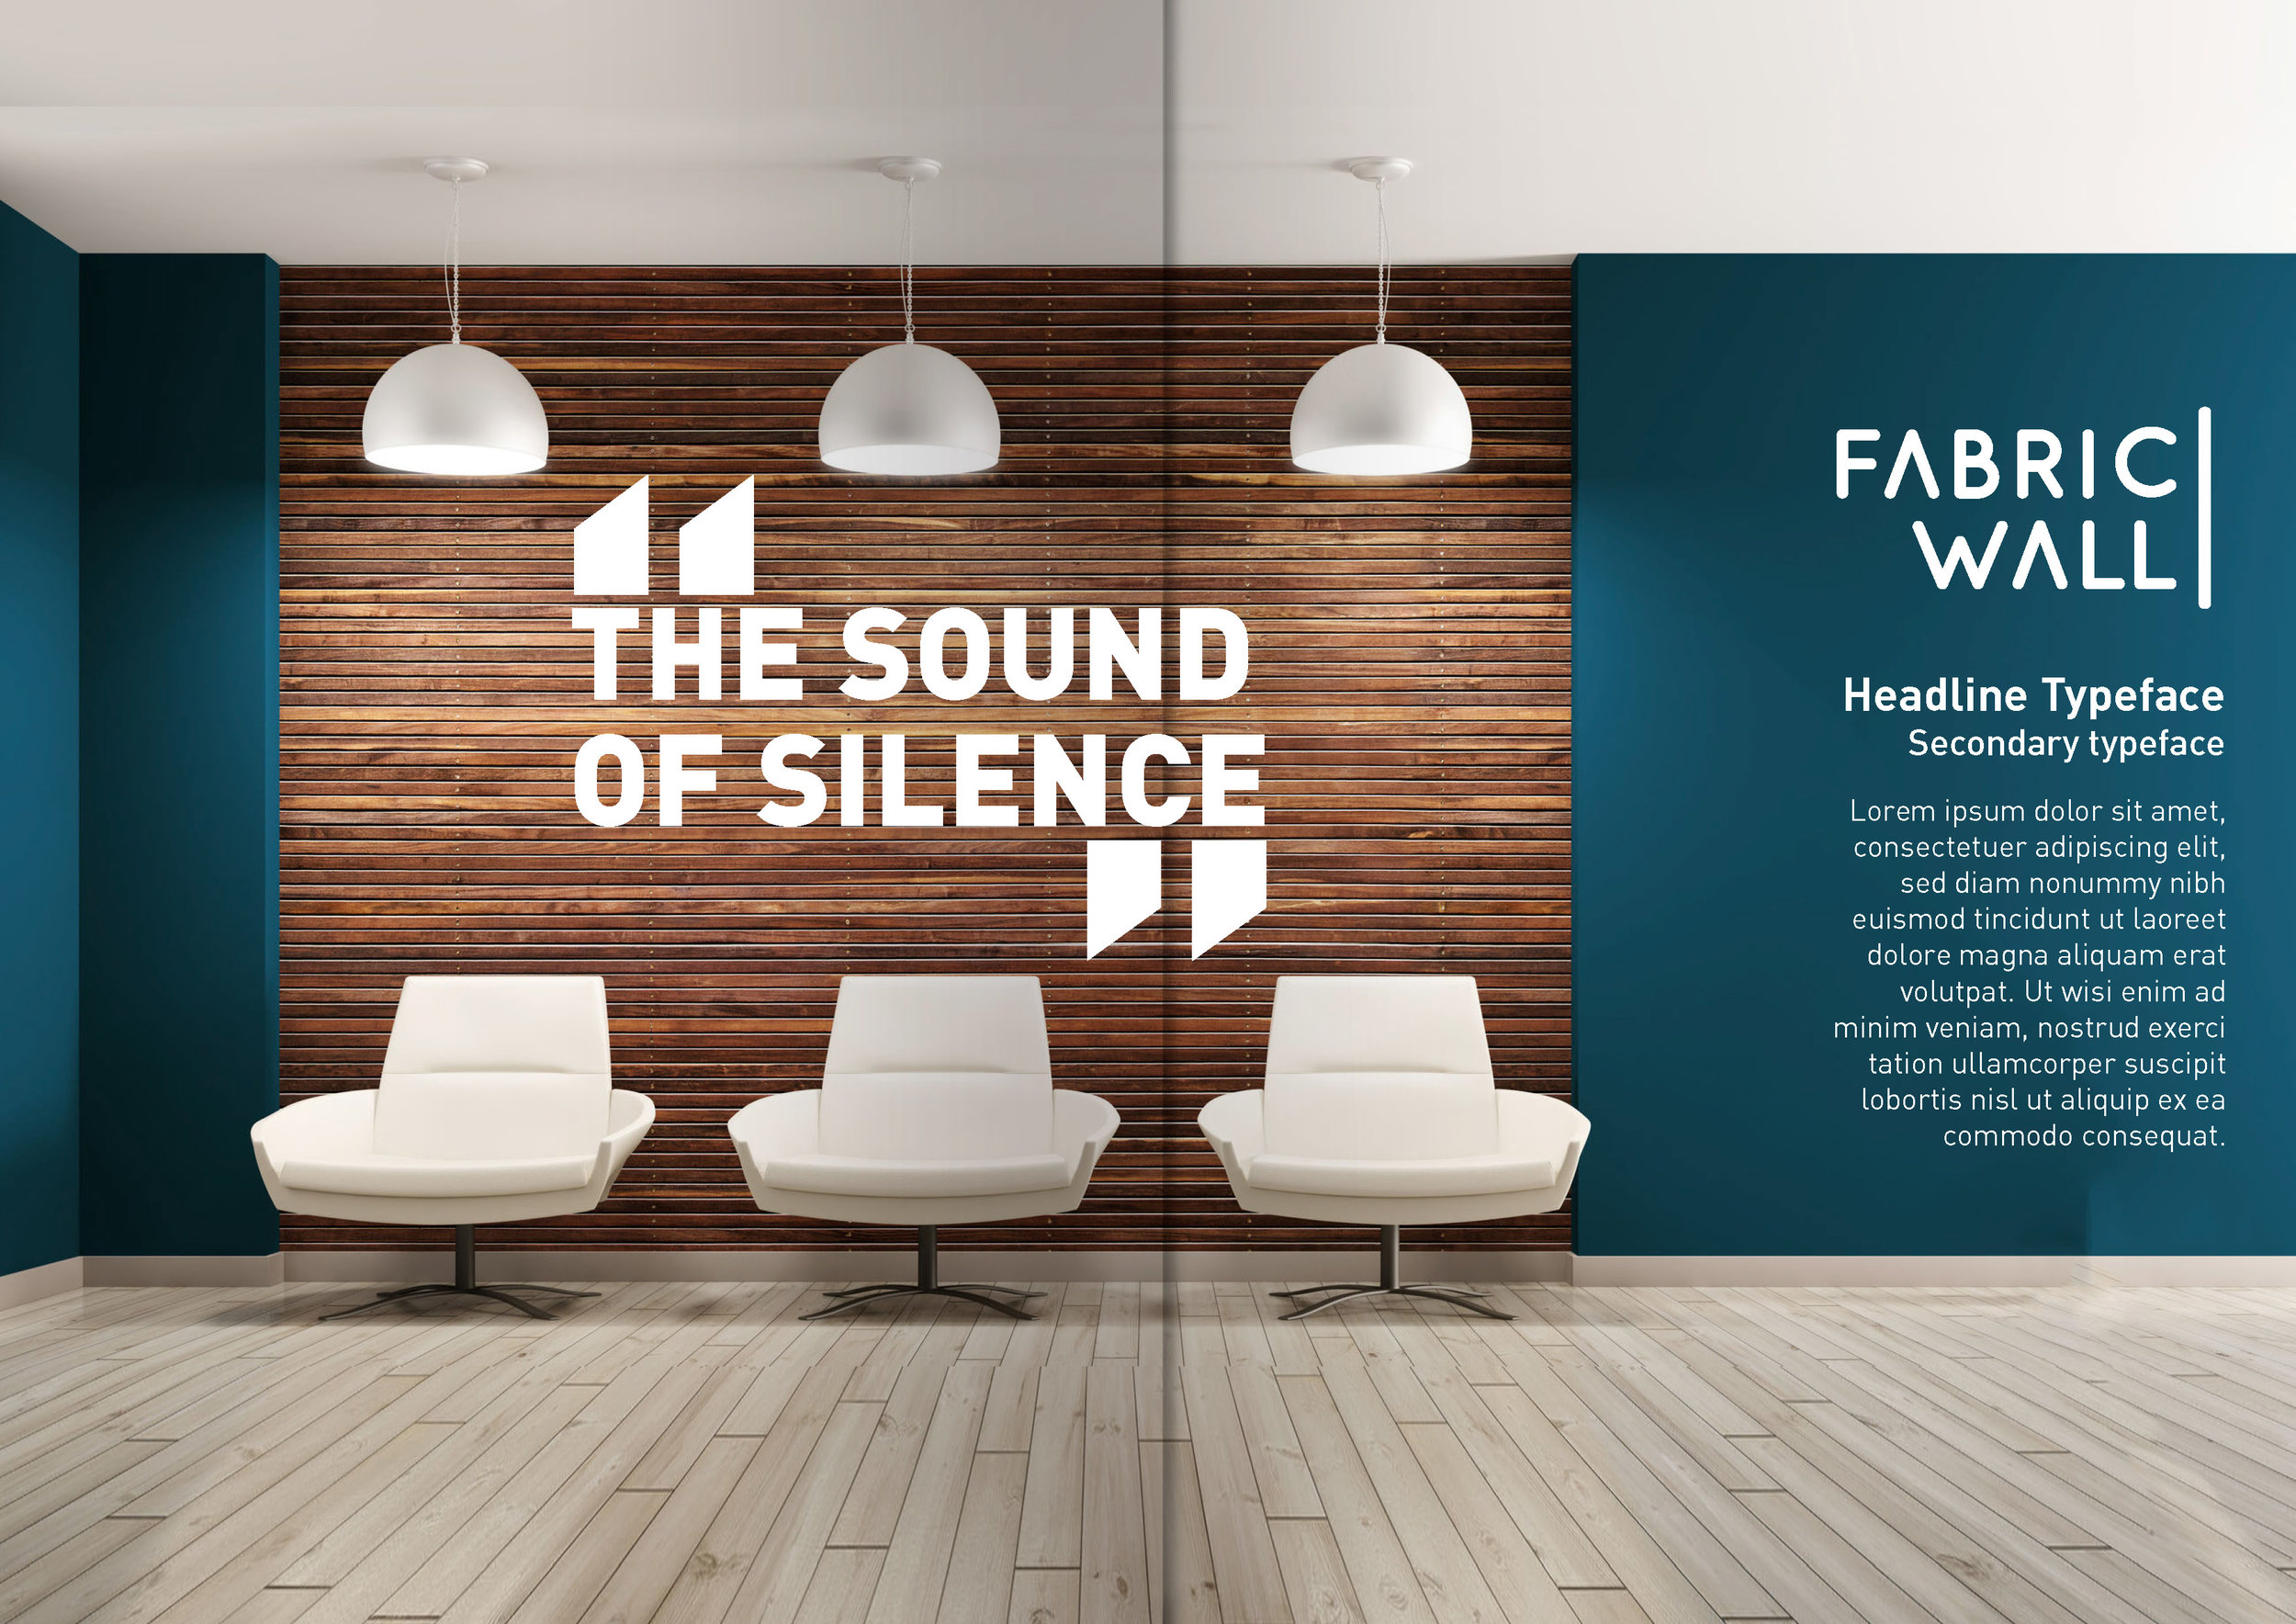 FABRIC WALL CHOSEN LOGO MOCK UP v2_Page_6.jpg